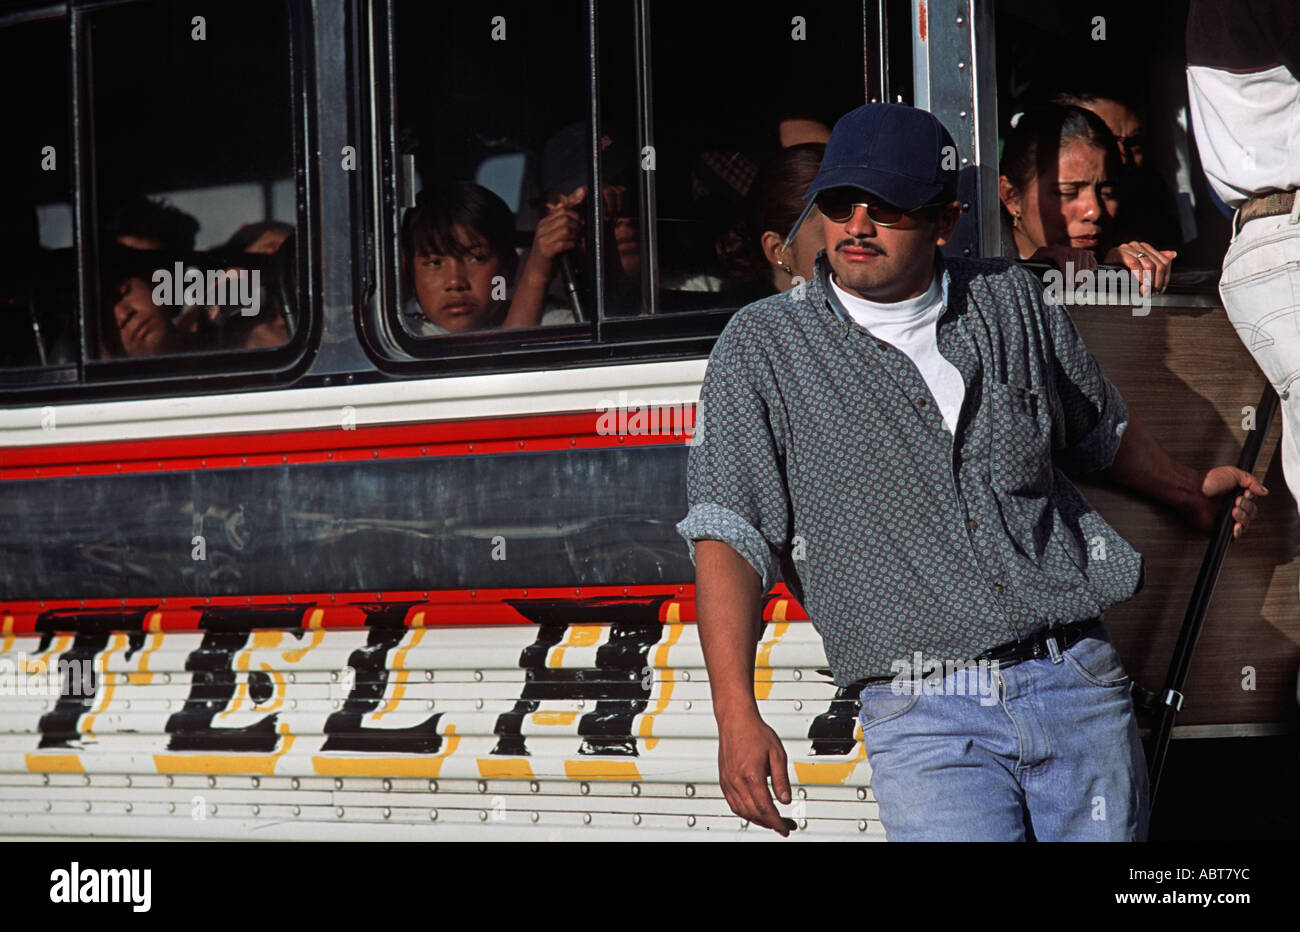 GUATEMALA Guatemalan bus conductor standing at the entrance of a moving bus Central America - Stock Image